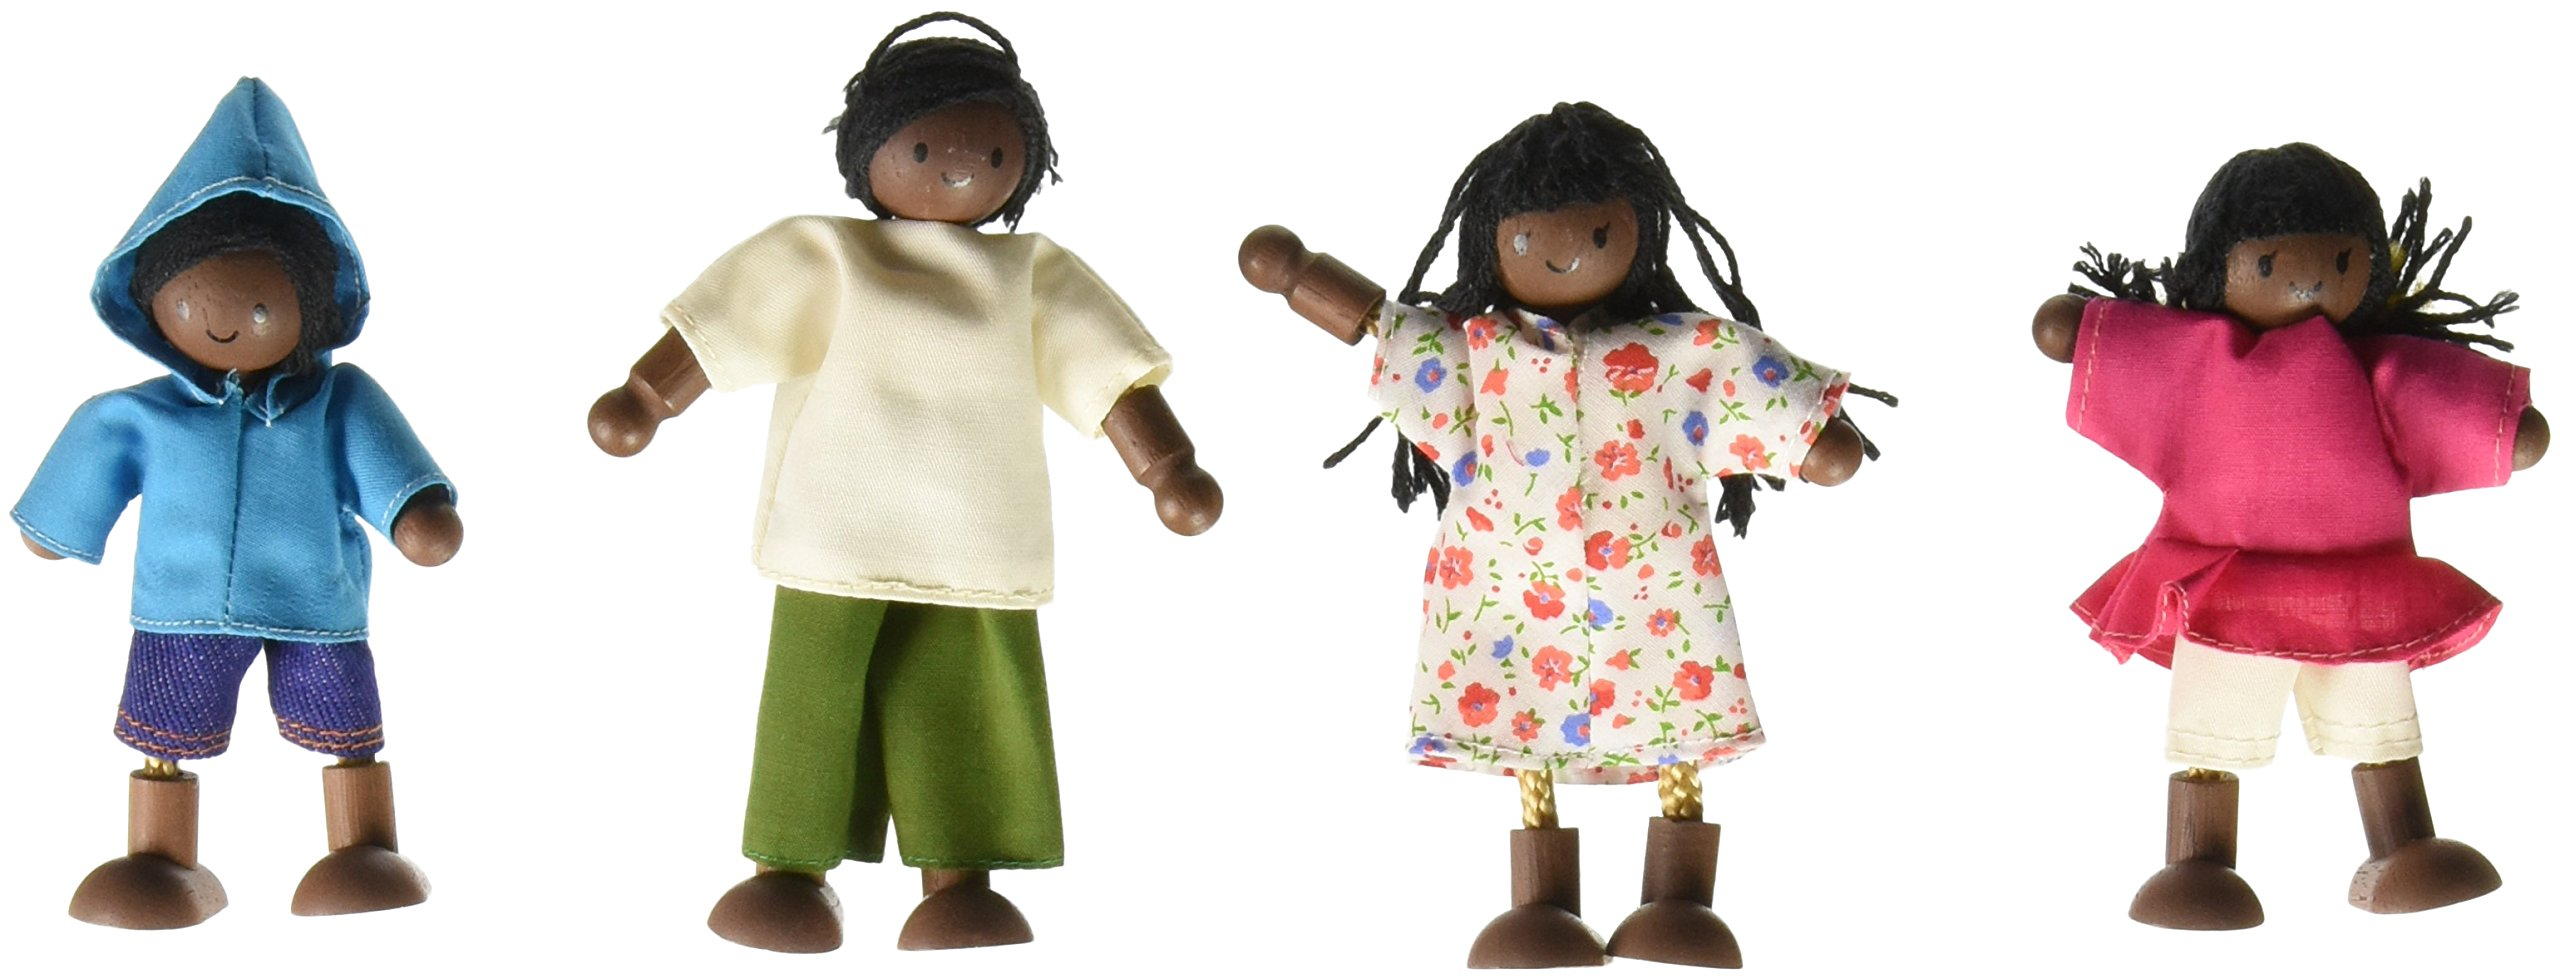 PlanToys Wooden Doll Family, African American, Set of 4